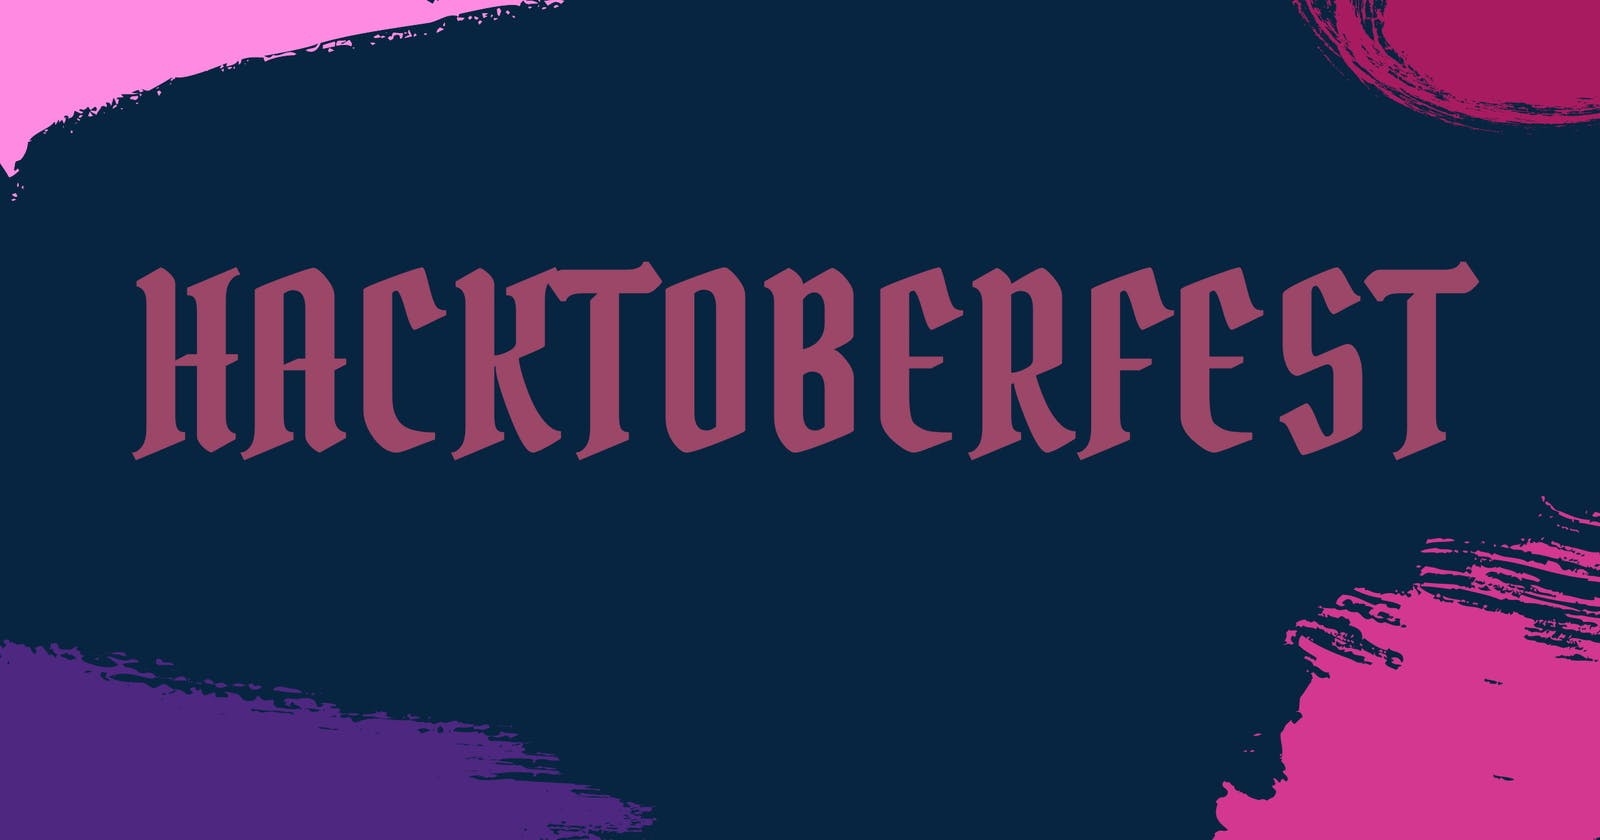 Hacktoberfest: 69 Beginner-Friendly Projects You Can Contribute To